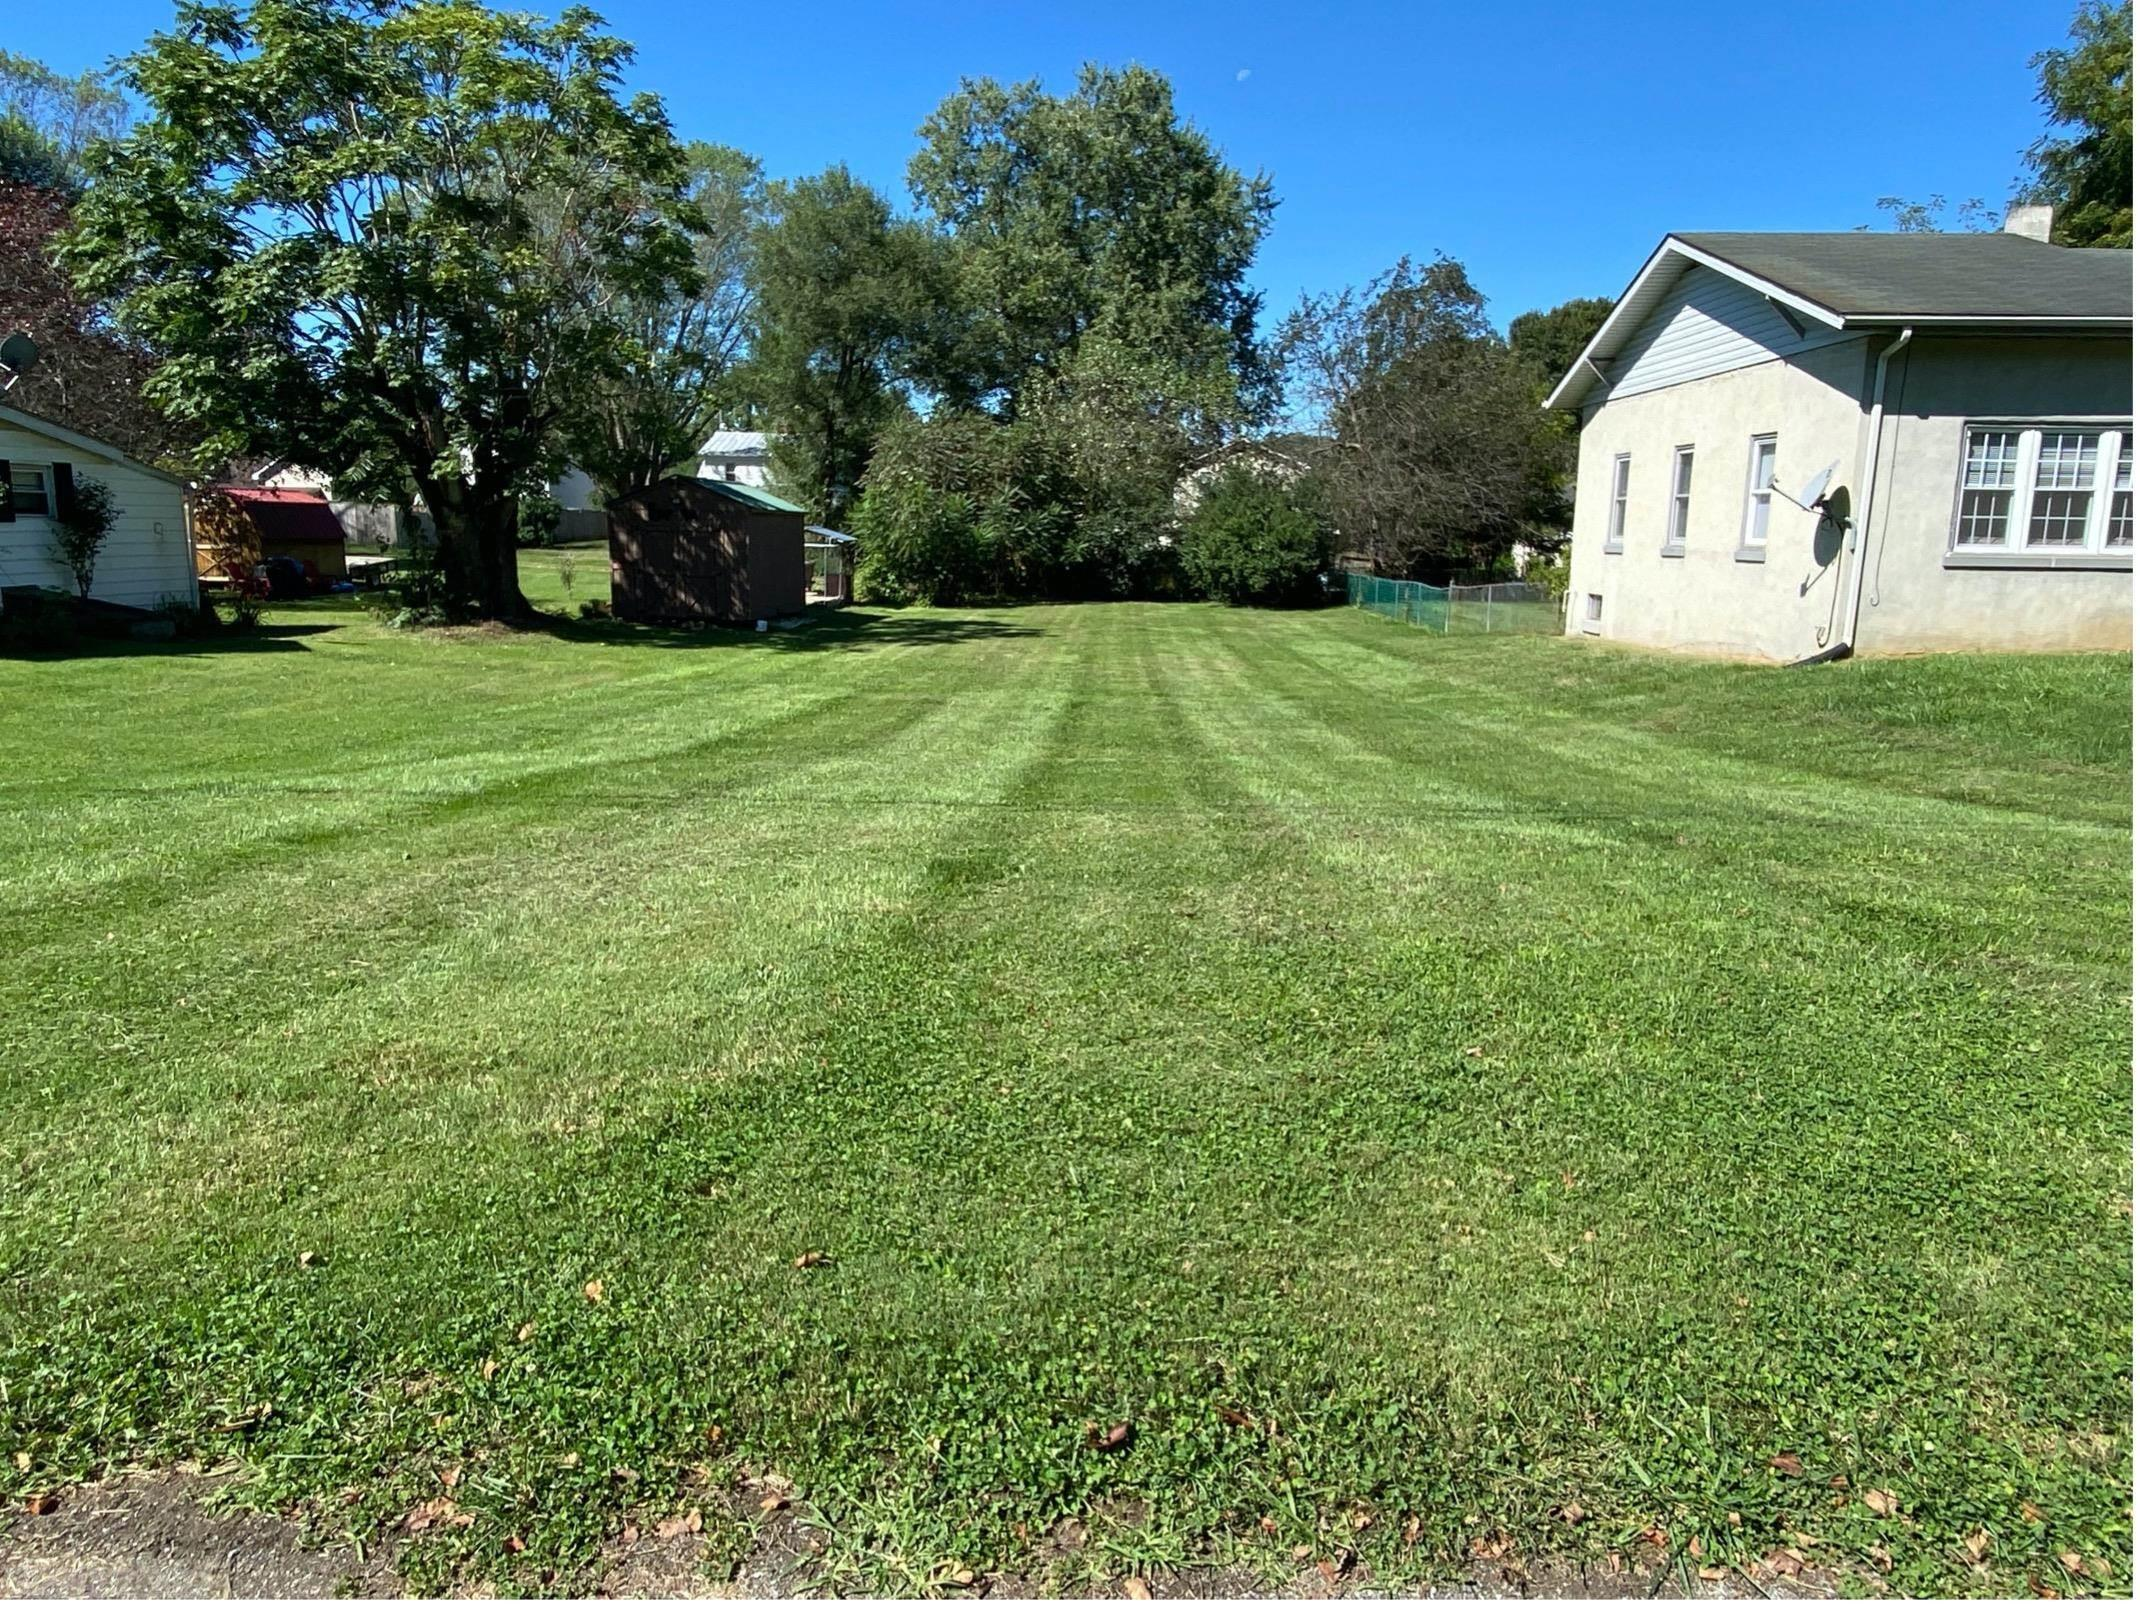 BUILDER NEEDED!! Level lot in town ready for a home.  This lot has public water and sewer and waiting for new construction. Lot size is 50' X 150'